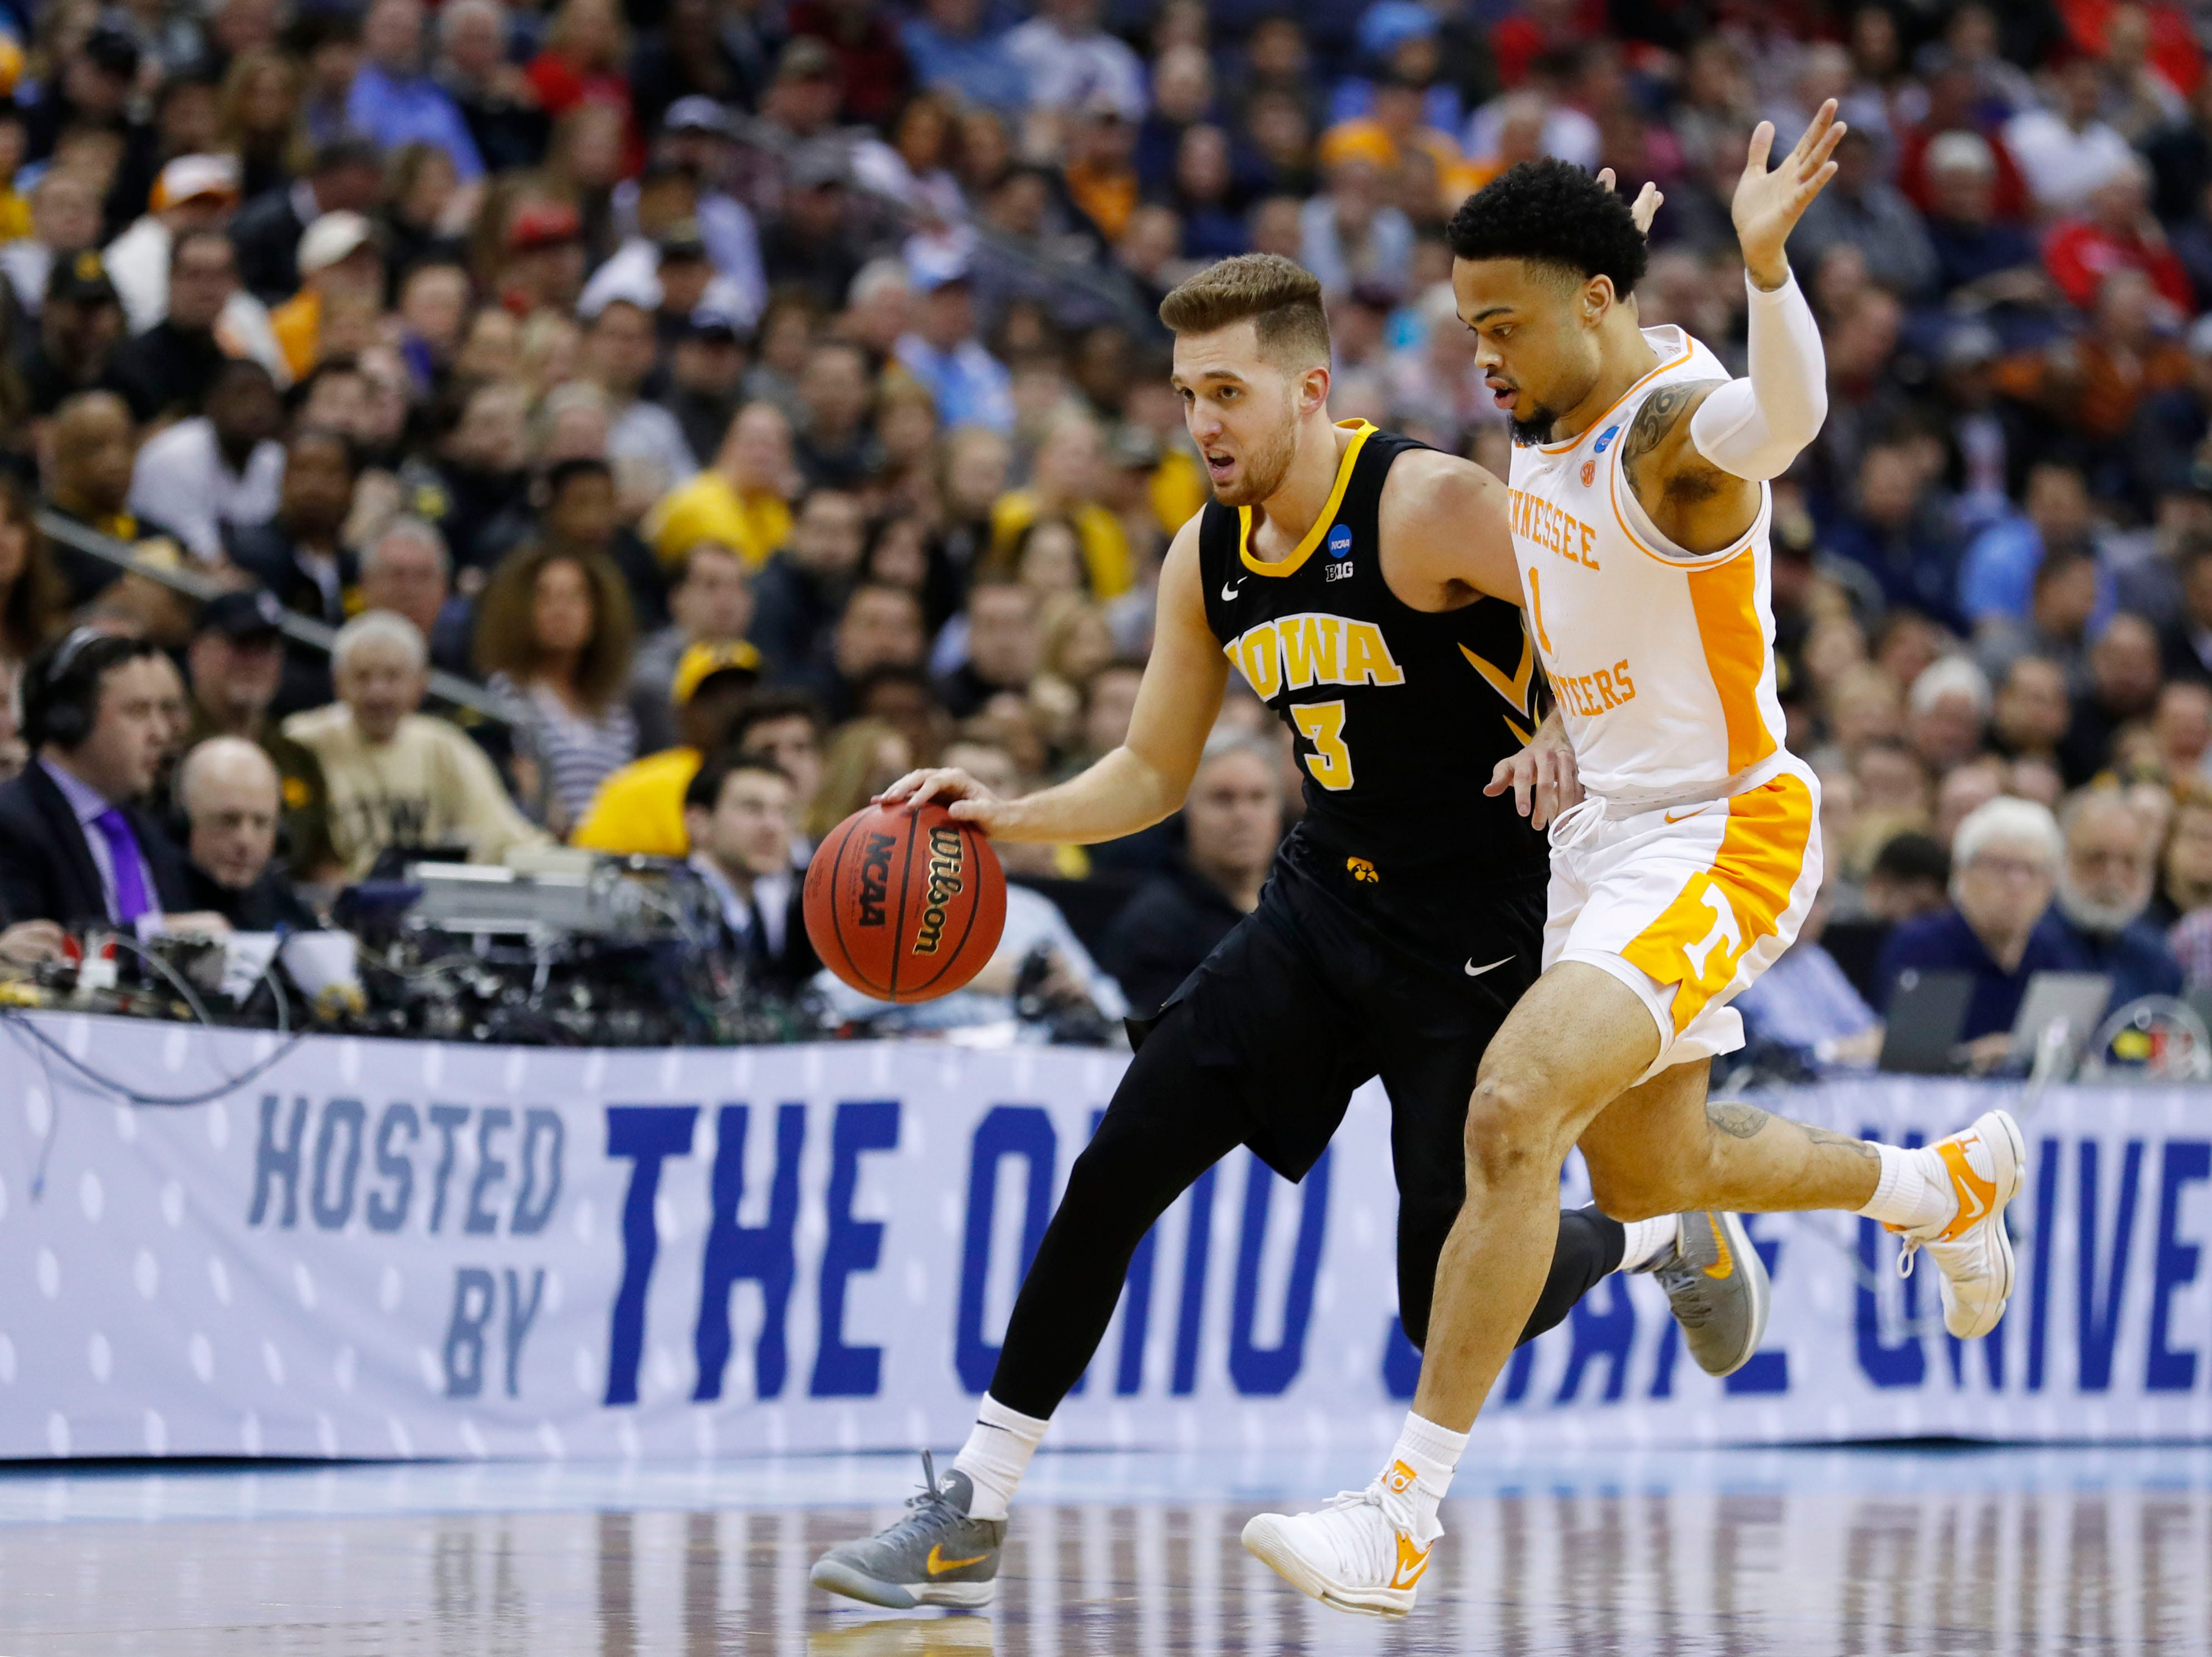 Iowa Hawkeyes guard Jordan Bohannon (3) drives down the court defended by Tennessee Volunteers guard Lamonte Turner (1) in the first half in the second round of the 2019 NCAA Tournament at Nationwide Arena.